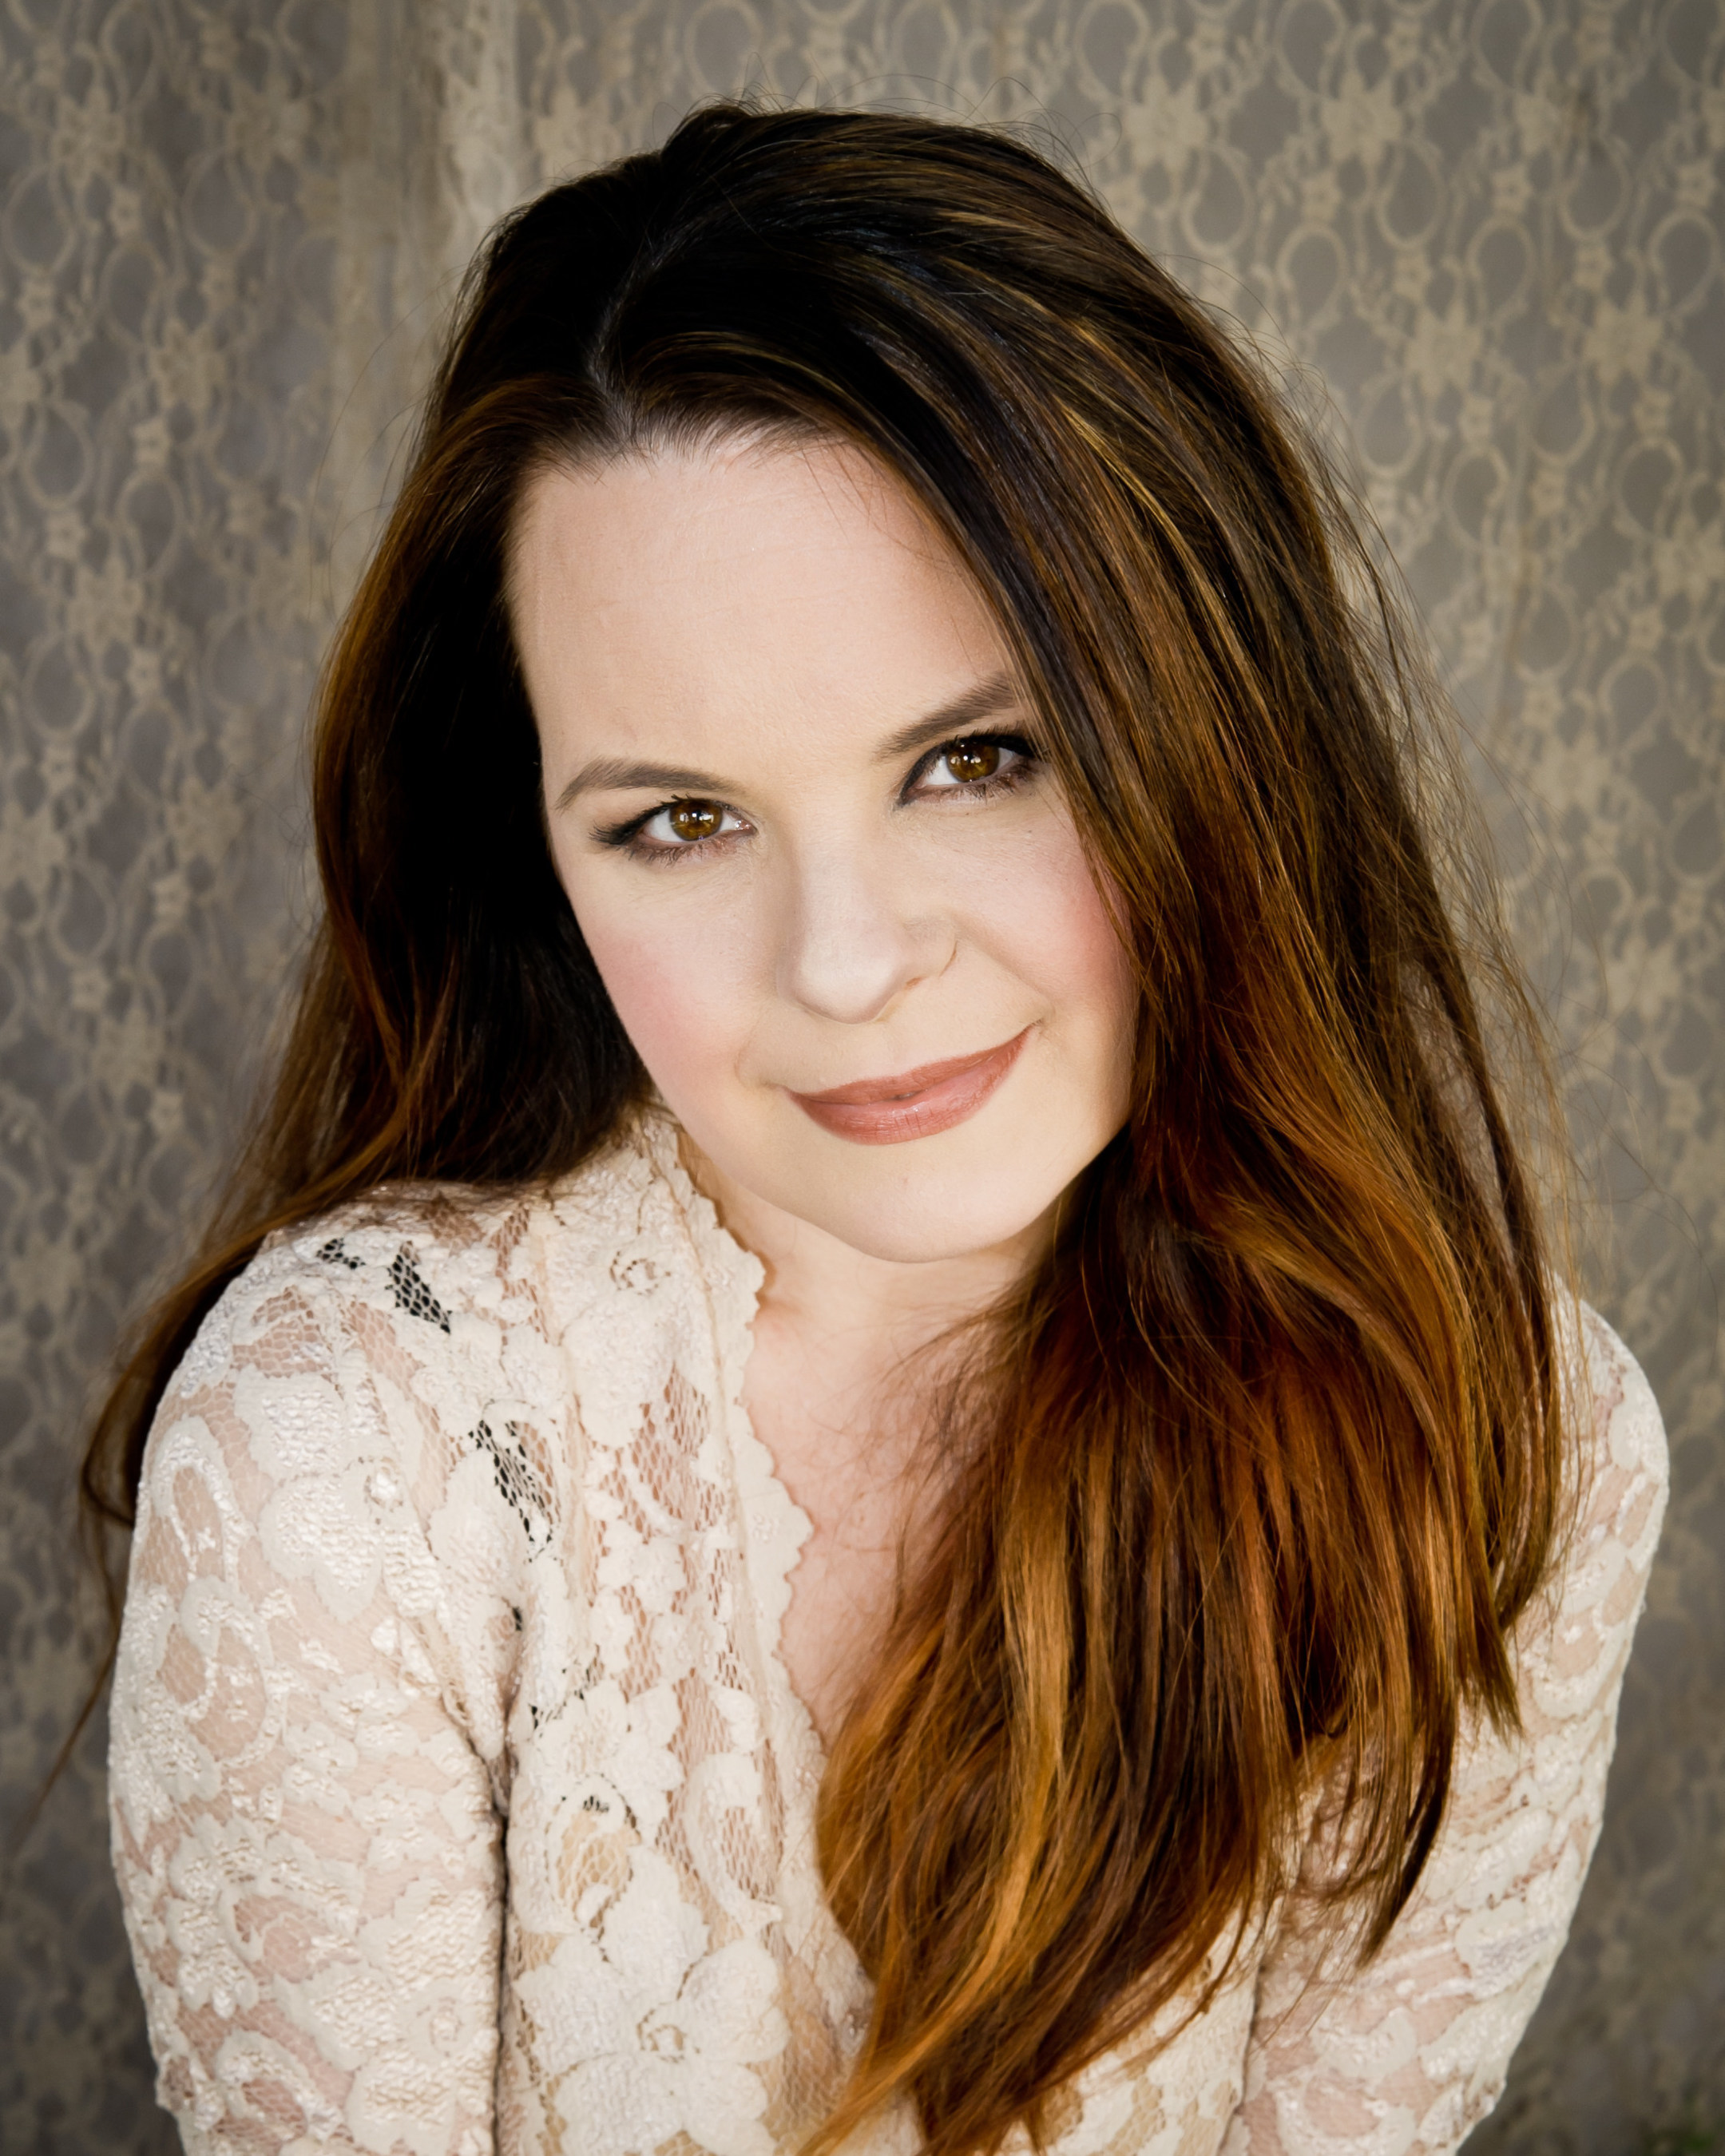 Jenna von Oy Pregnant, Expecting Second Child With Brad